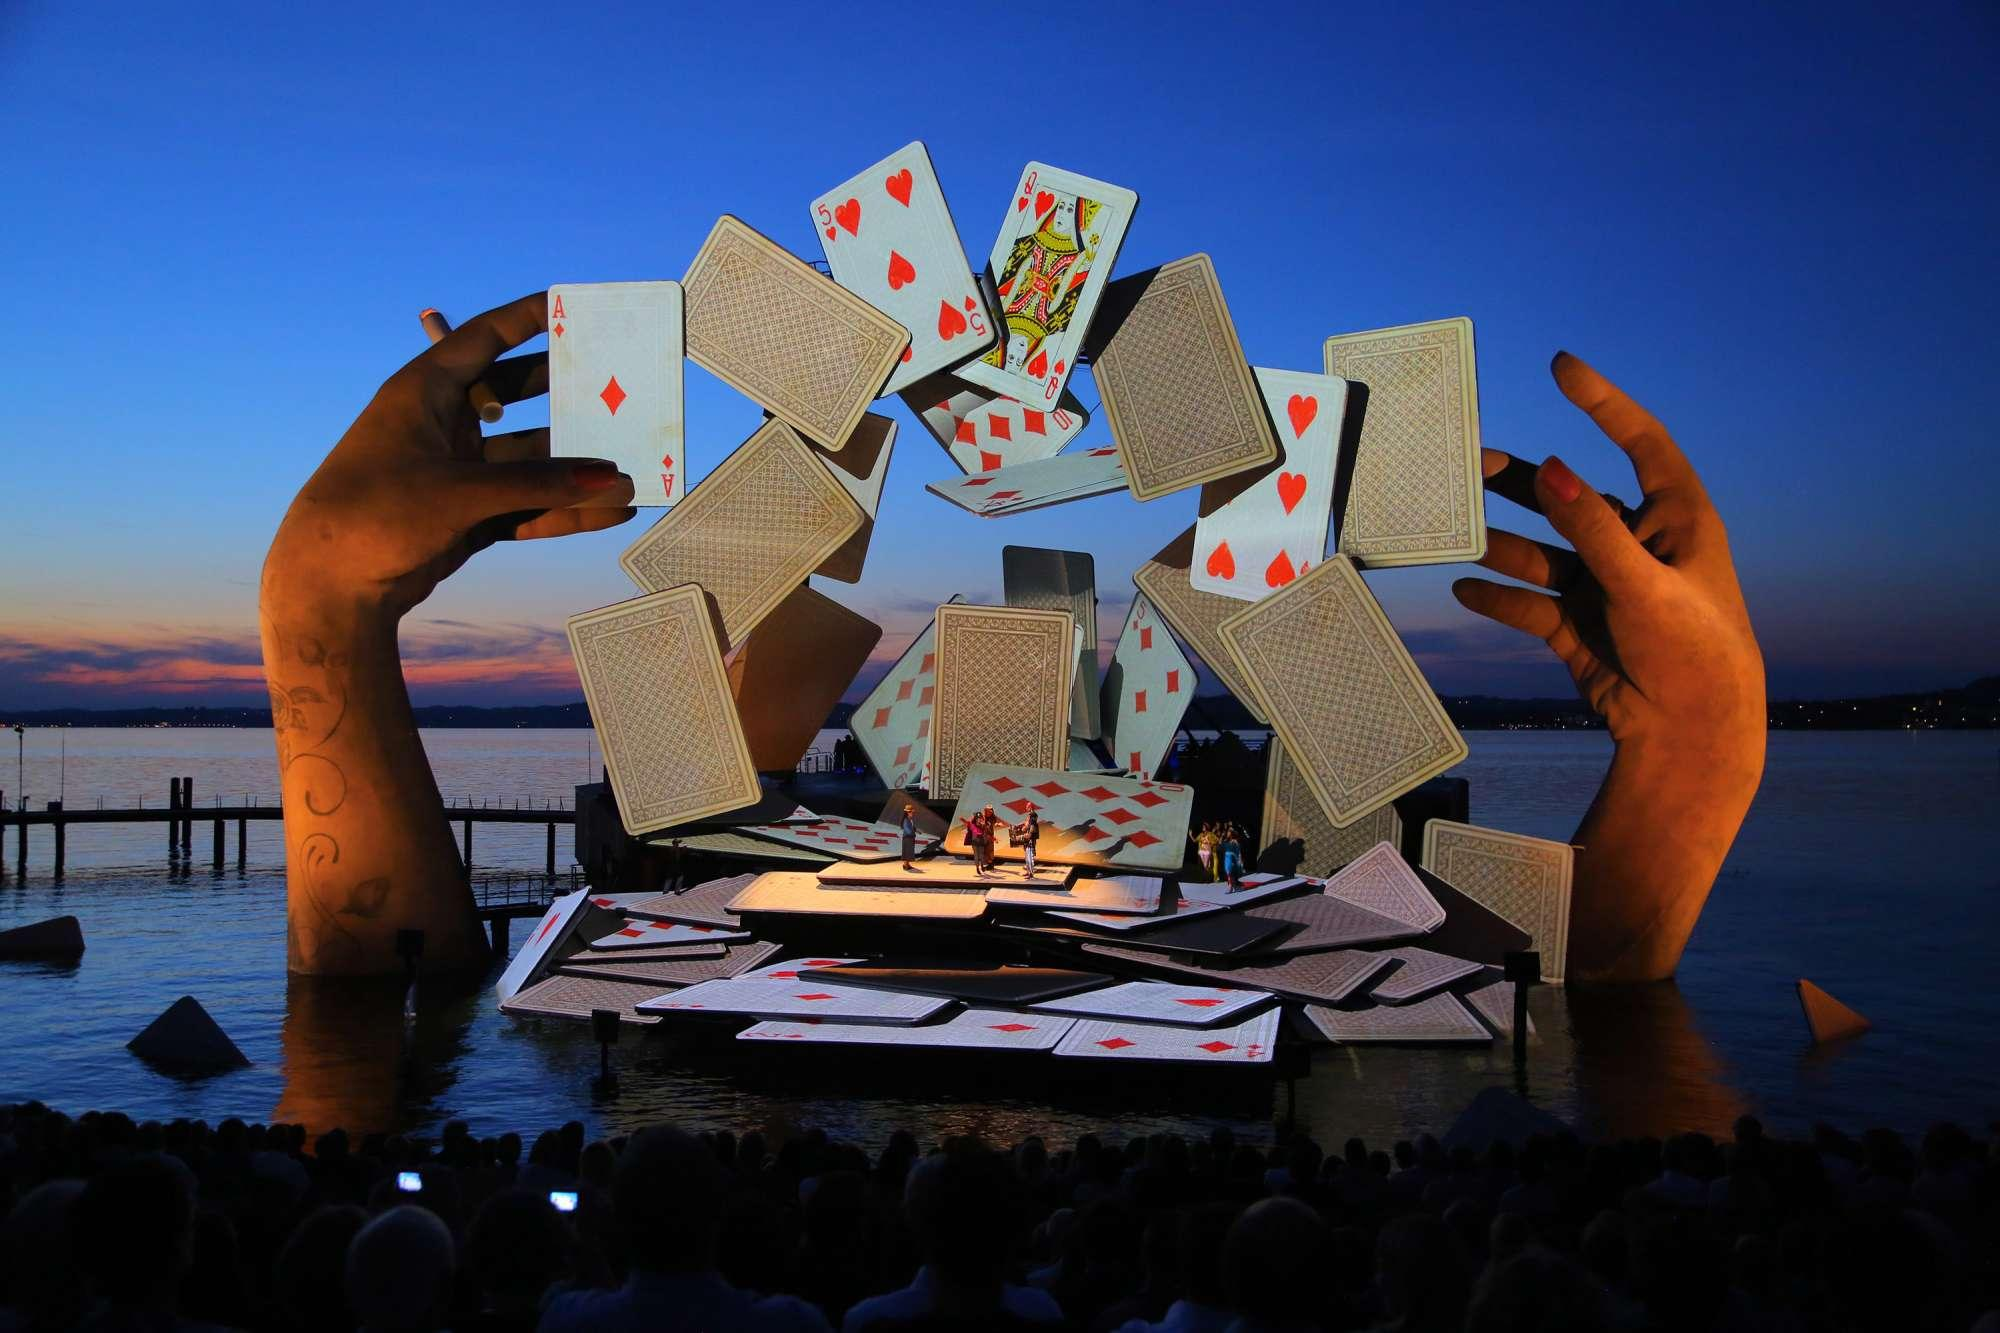 Scene from Es Devlin's Carmen set - playing card stage on river is flaked by large hands